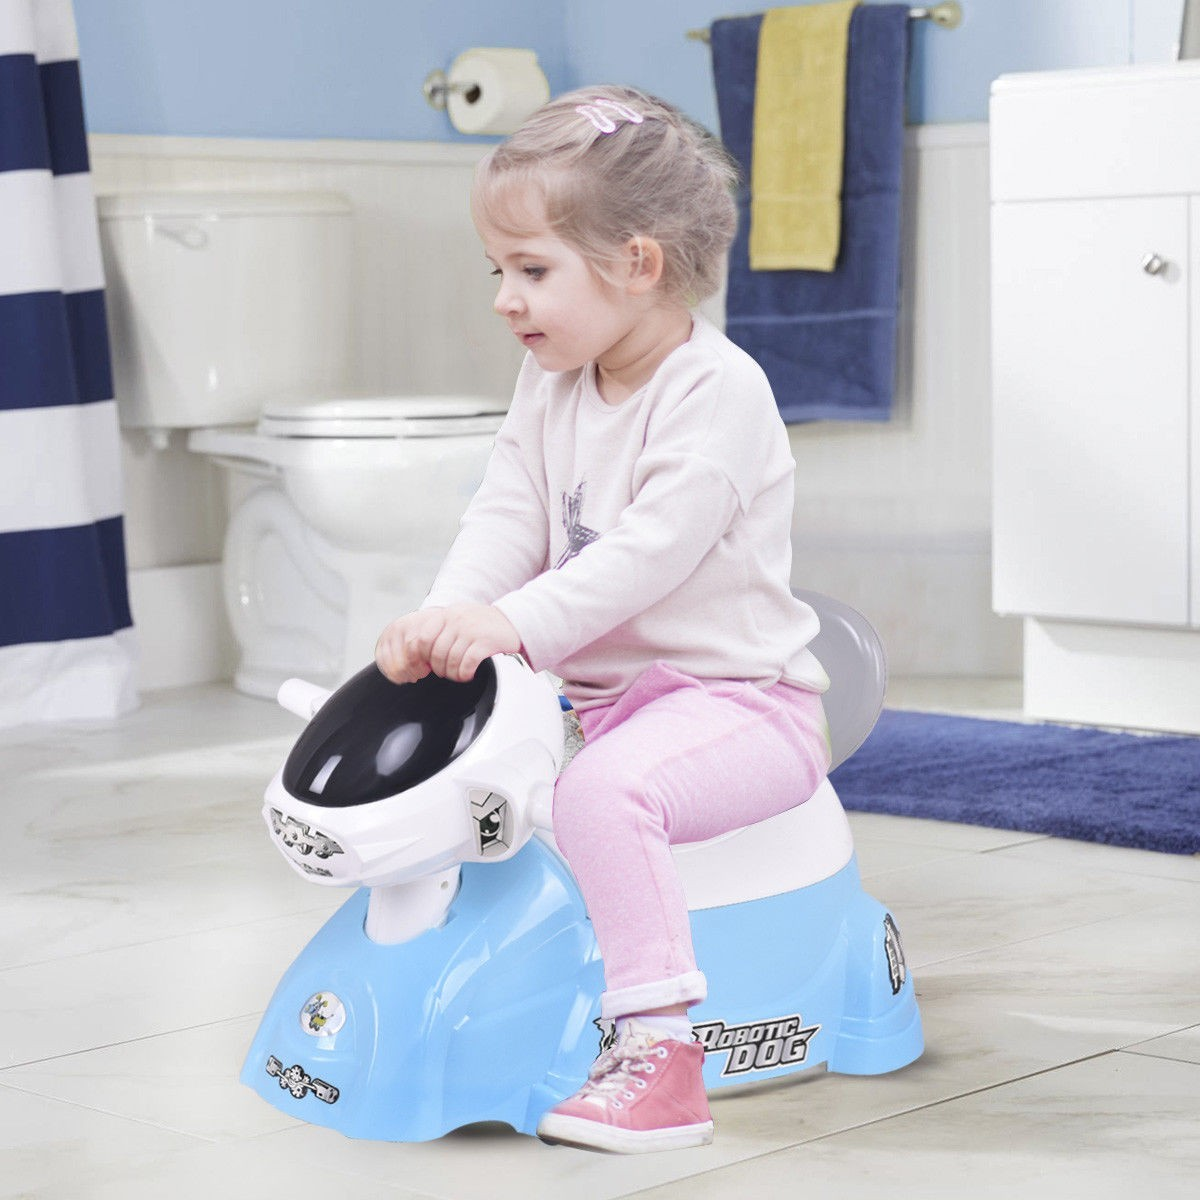 Kids Baby Potty Training Toilet Trainer Seat with Music Slide Function Blue Dog by Apontus